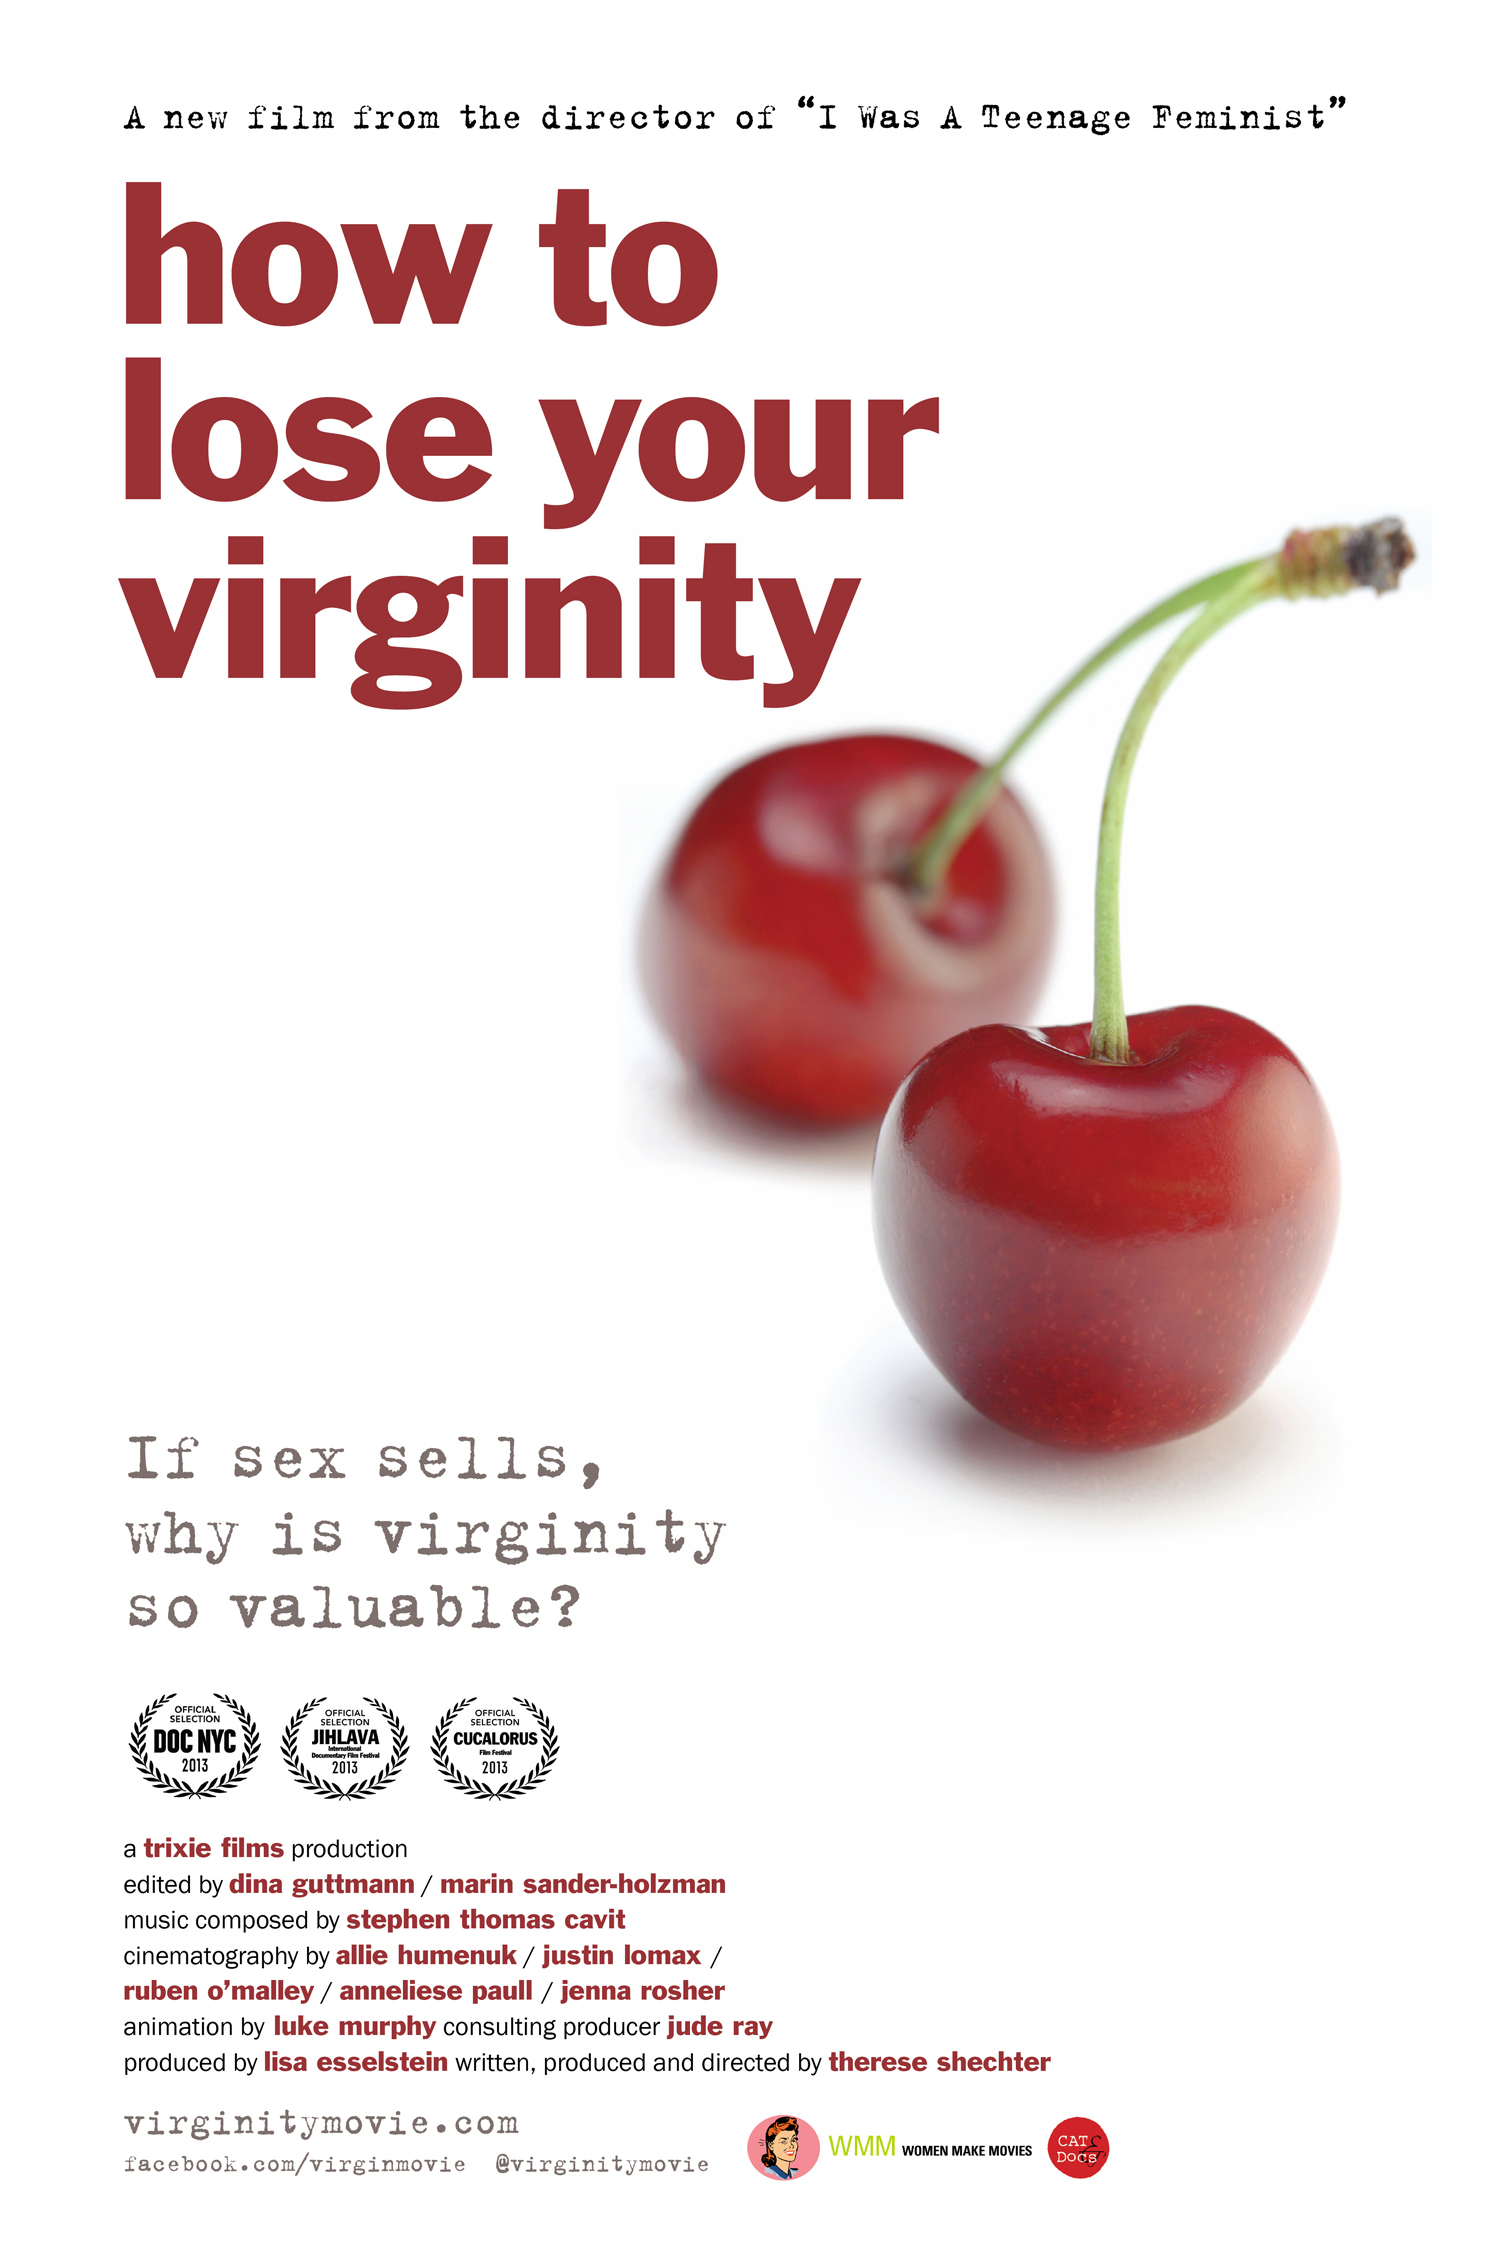 Losing virginity through